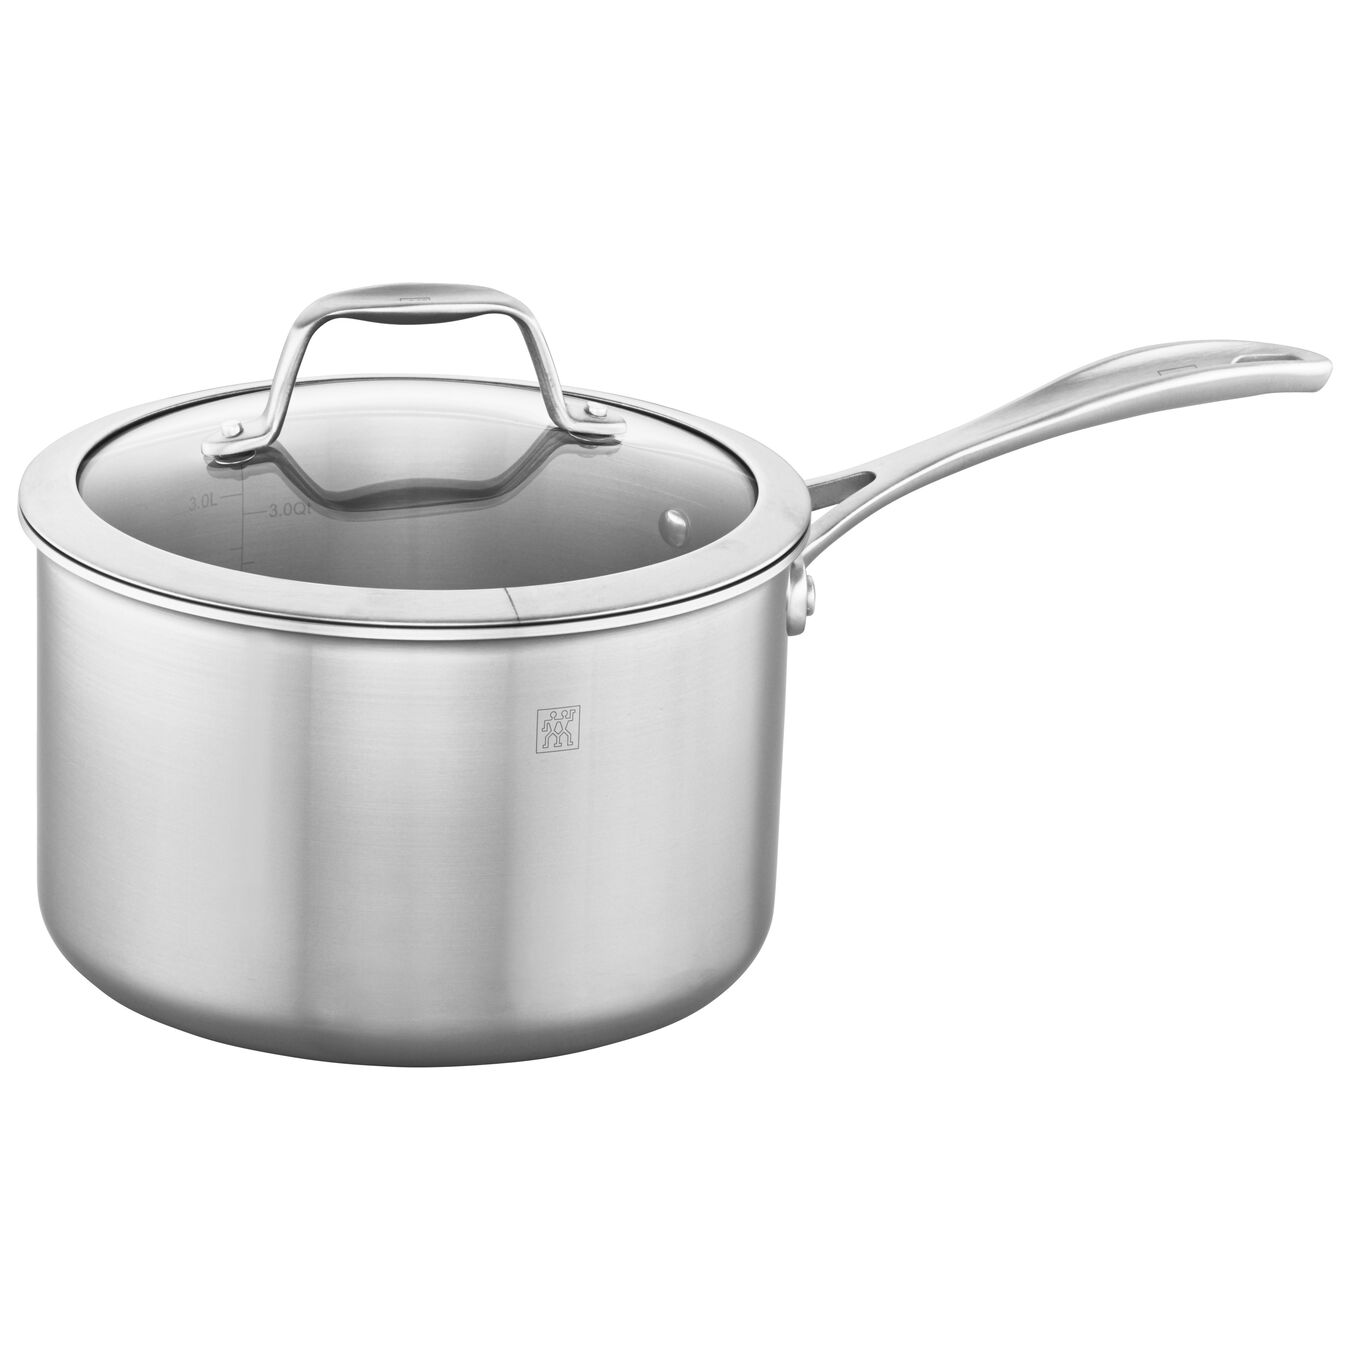 4 qt, 18/10 Stainless Steel, Non-stick, Sauce pan,,large 1